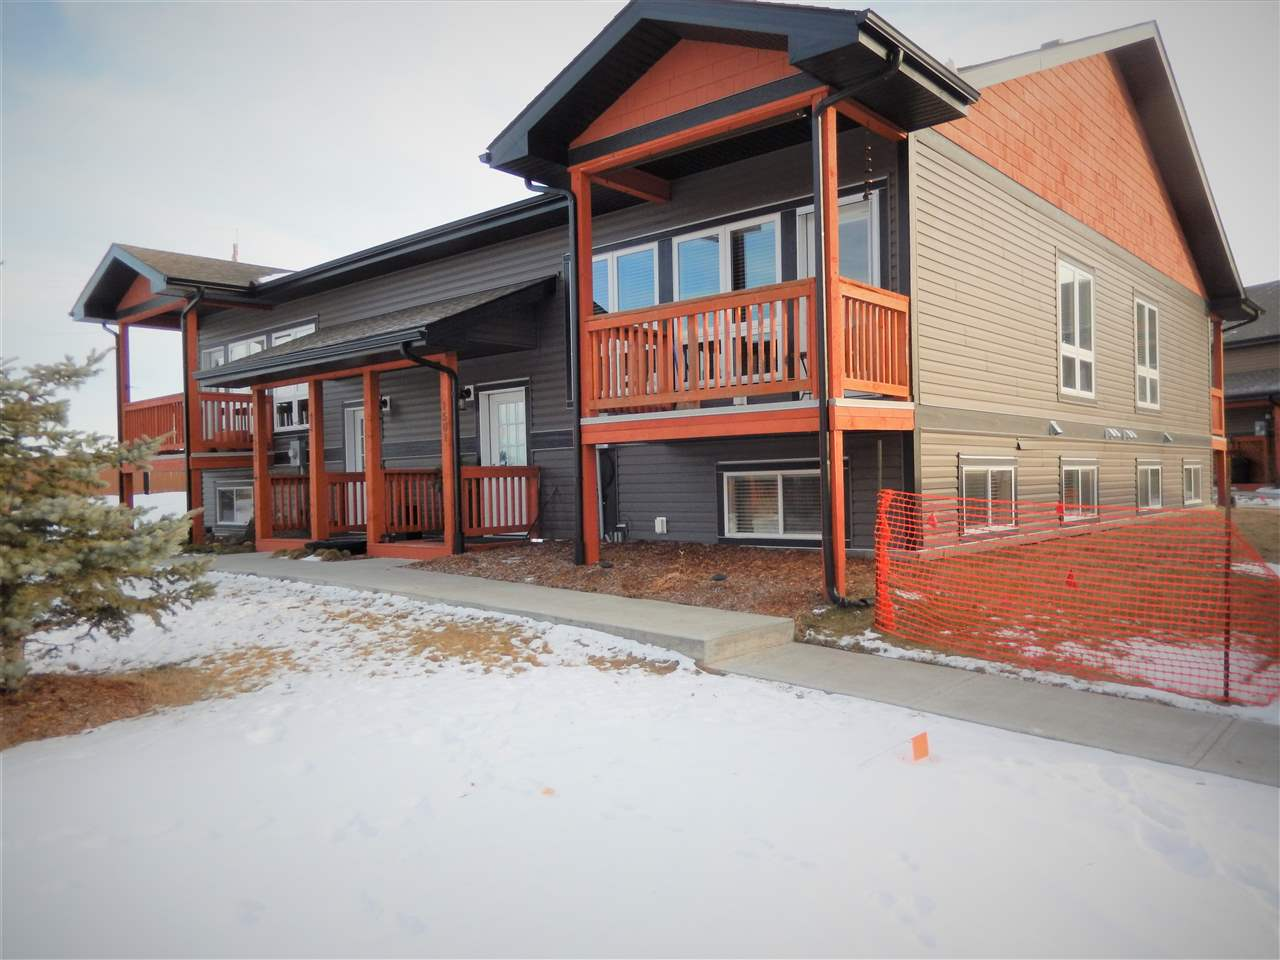 This 2015 Unit has one of the few DOUBLE CARPORTS that allows you to see your vehicles from your Unit! It also sits on the outer area of the complex & has a BIG GREENSPACE between the Units backing onto a HIGH FENCE. This BI-LEVEL with 9' CEILINGS has the OPEN CONCEPT kitchen, living rm, dining rm, 2 pce bathr & pantry on the Upper Level. On the Lower Level sits the full bathr, 2 bedrs, laundry area & storage/utility rm. You will love the kitchen with LARGE ISLAND/EATING BAR, GRANITE COUNTER TOPS, STAINLESS APPL & GLASS BACKSPLASH. The BIG WINDOWS are plenty & there is a GARDEN DOOR out to the UPPER NW facing BALCONY. The master bedrm has a WALK-IN CLOSET & both bedrs have an attractive ledge along the walls under the windows. The DOUBLE CARPORT has LIGHTS (remote) & 2 PLUG-INS and a LARGE SECURED STORAGE SPACE. Construction of these units included the latest technology...ICF BLOCK foundation & RIGID STYROFOAM under the basement for extra warmth. ONE PET ALLOWED!